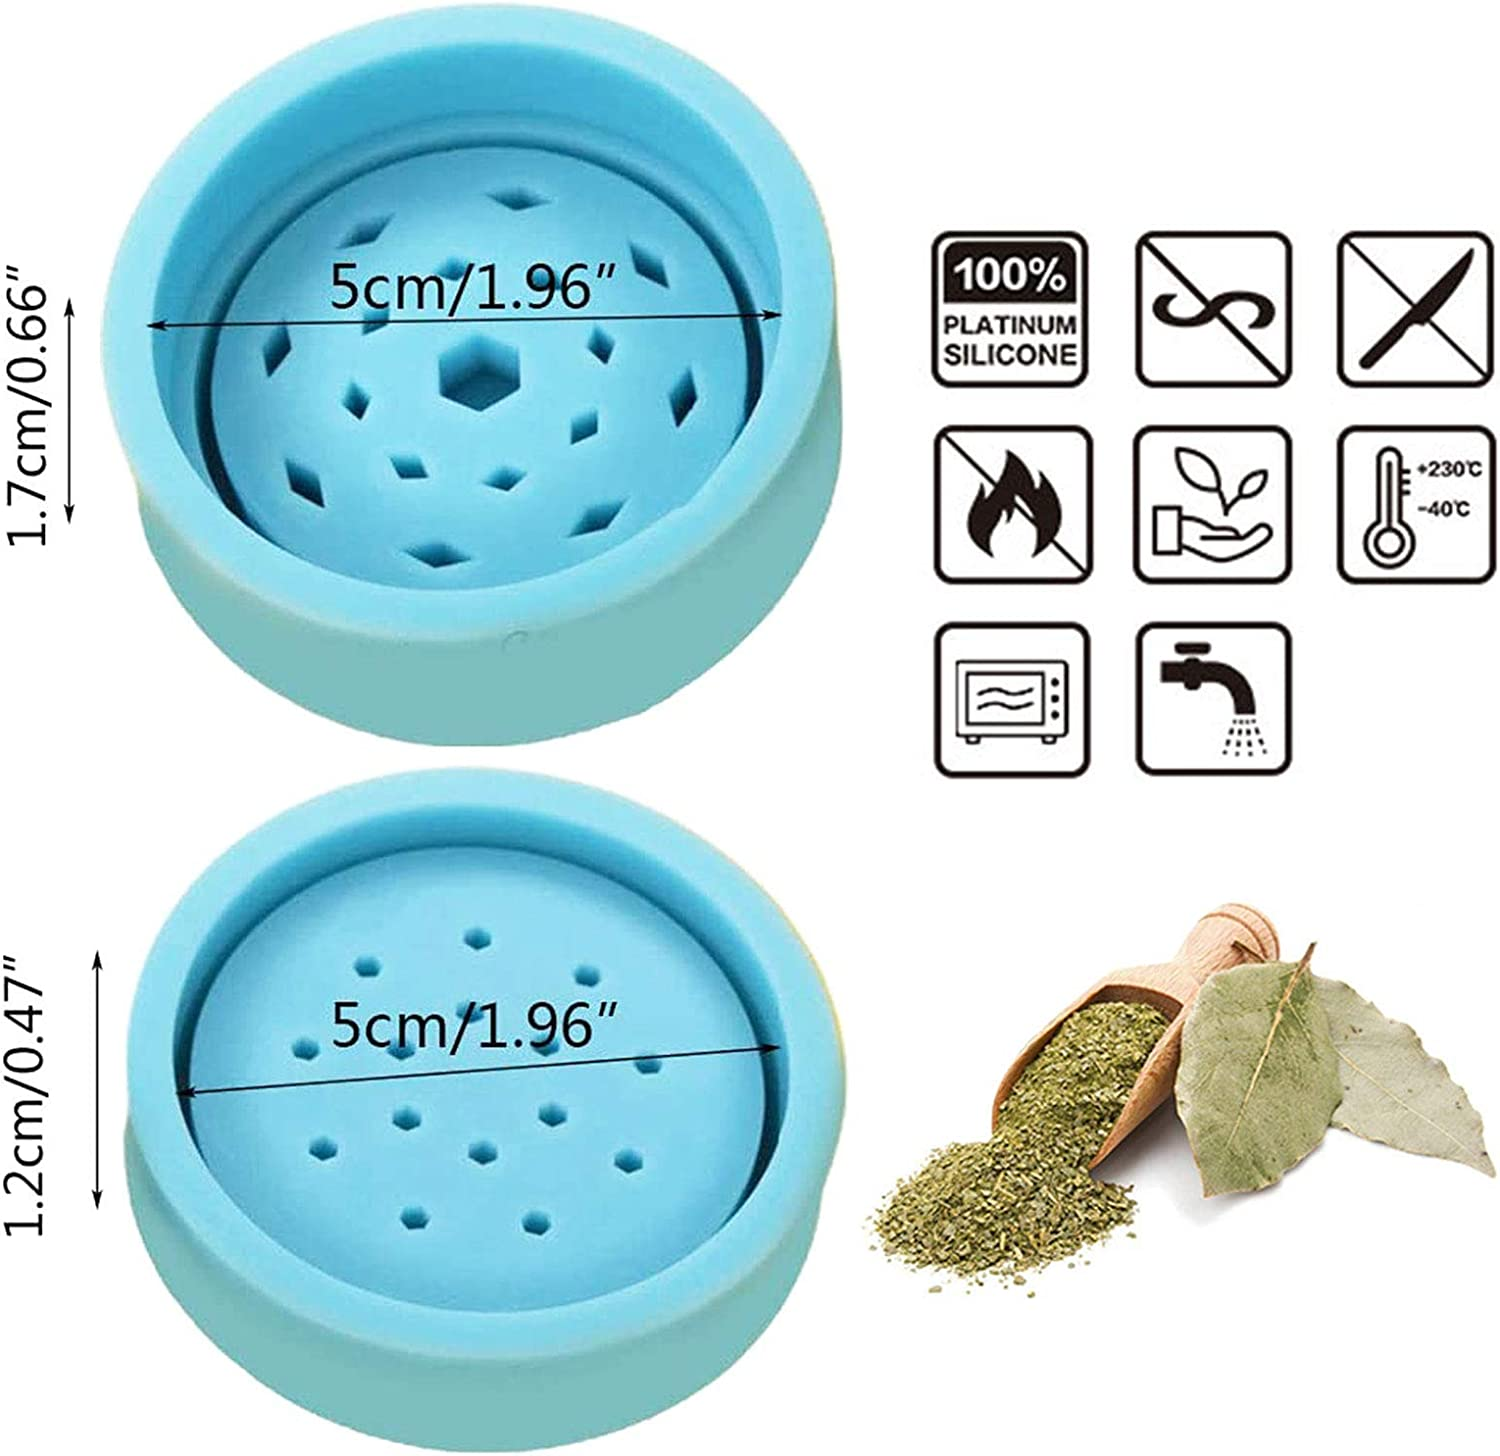 Silicone Epoxy Resin Mold DIY Leaf Herbal Herb Grinder Spice Crusher Mould Tools